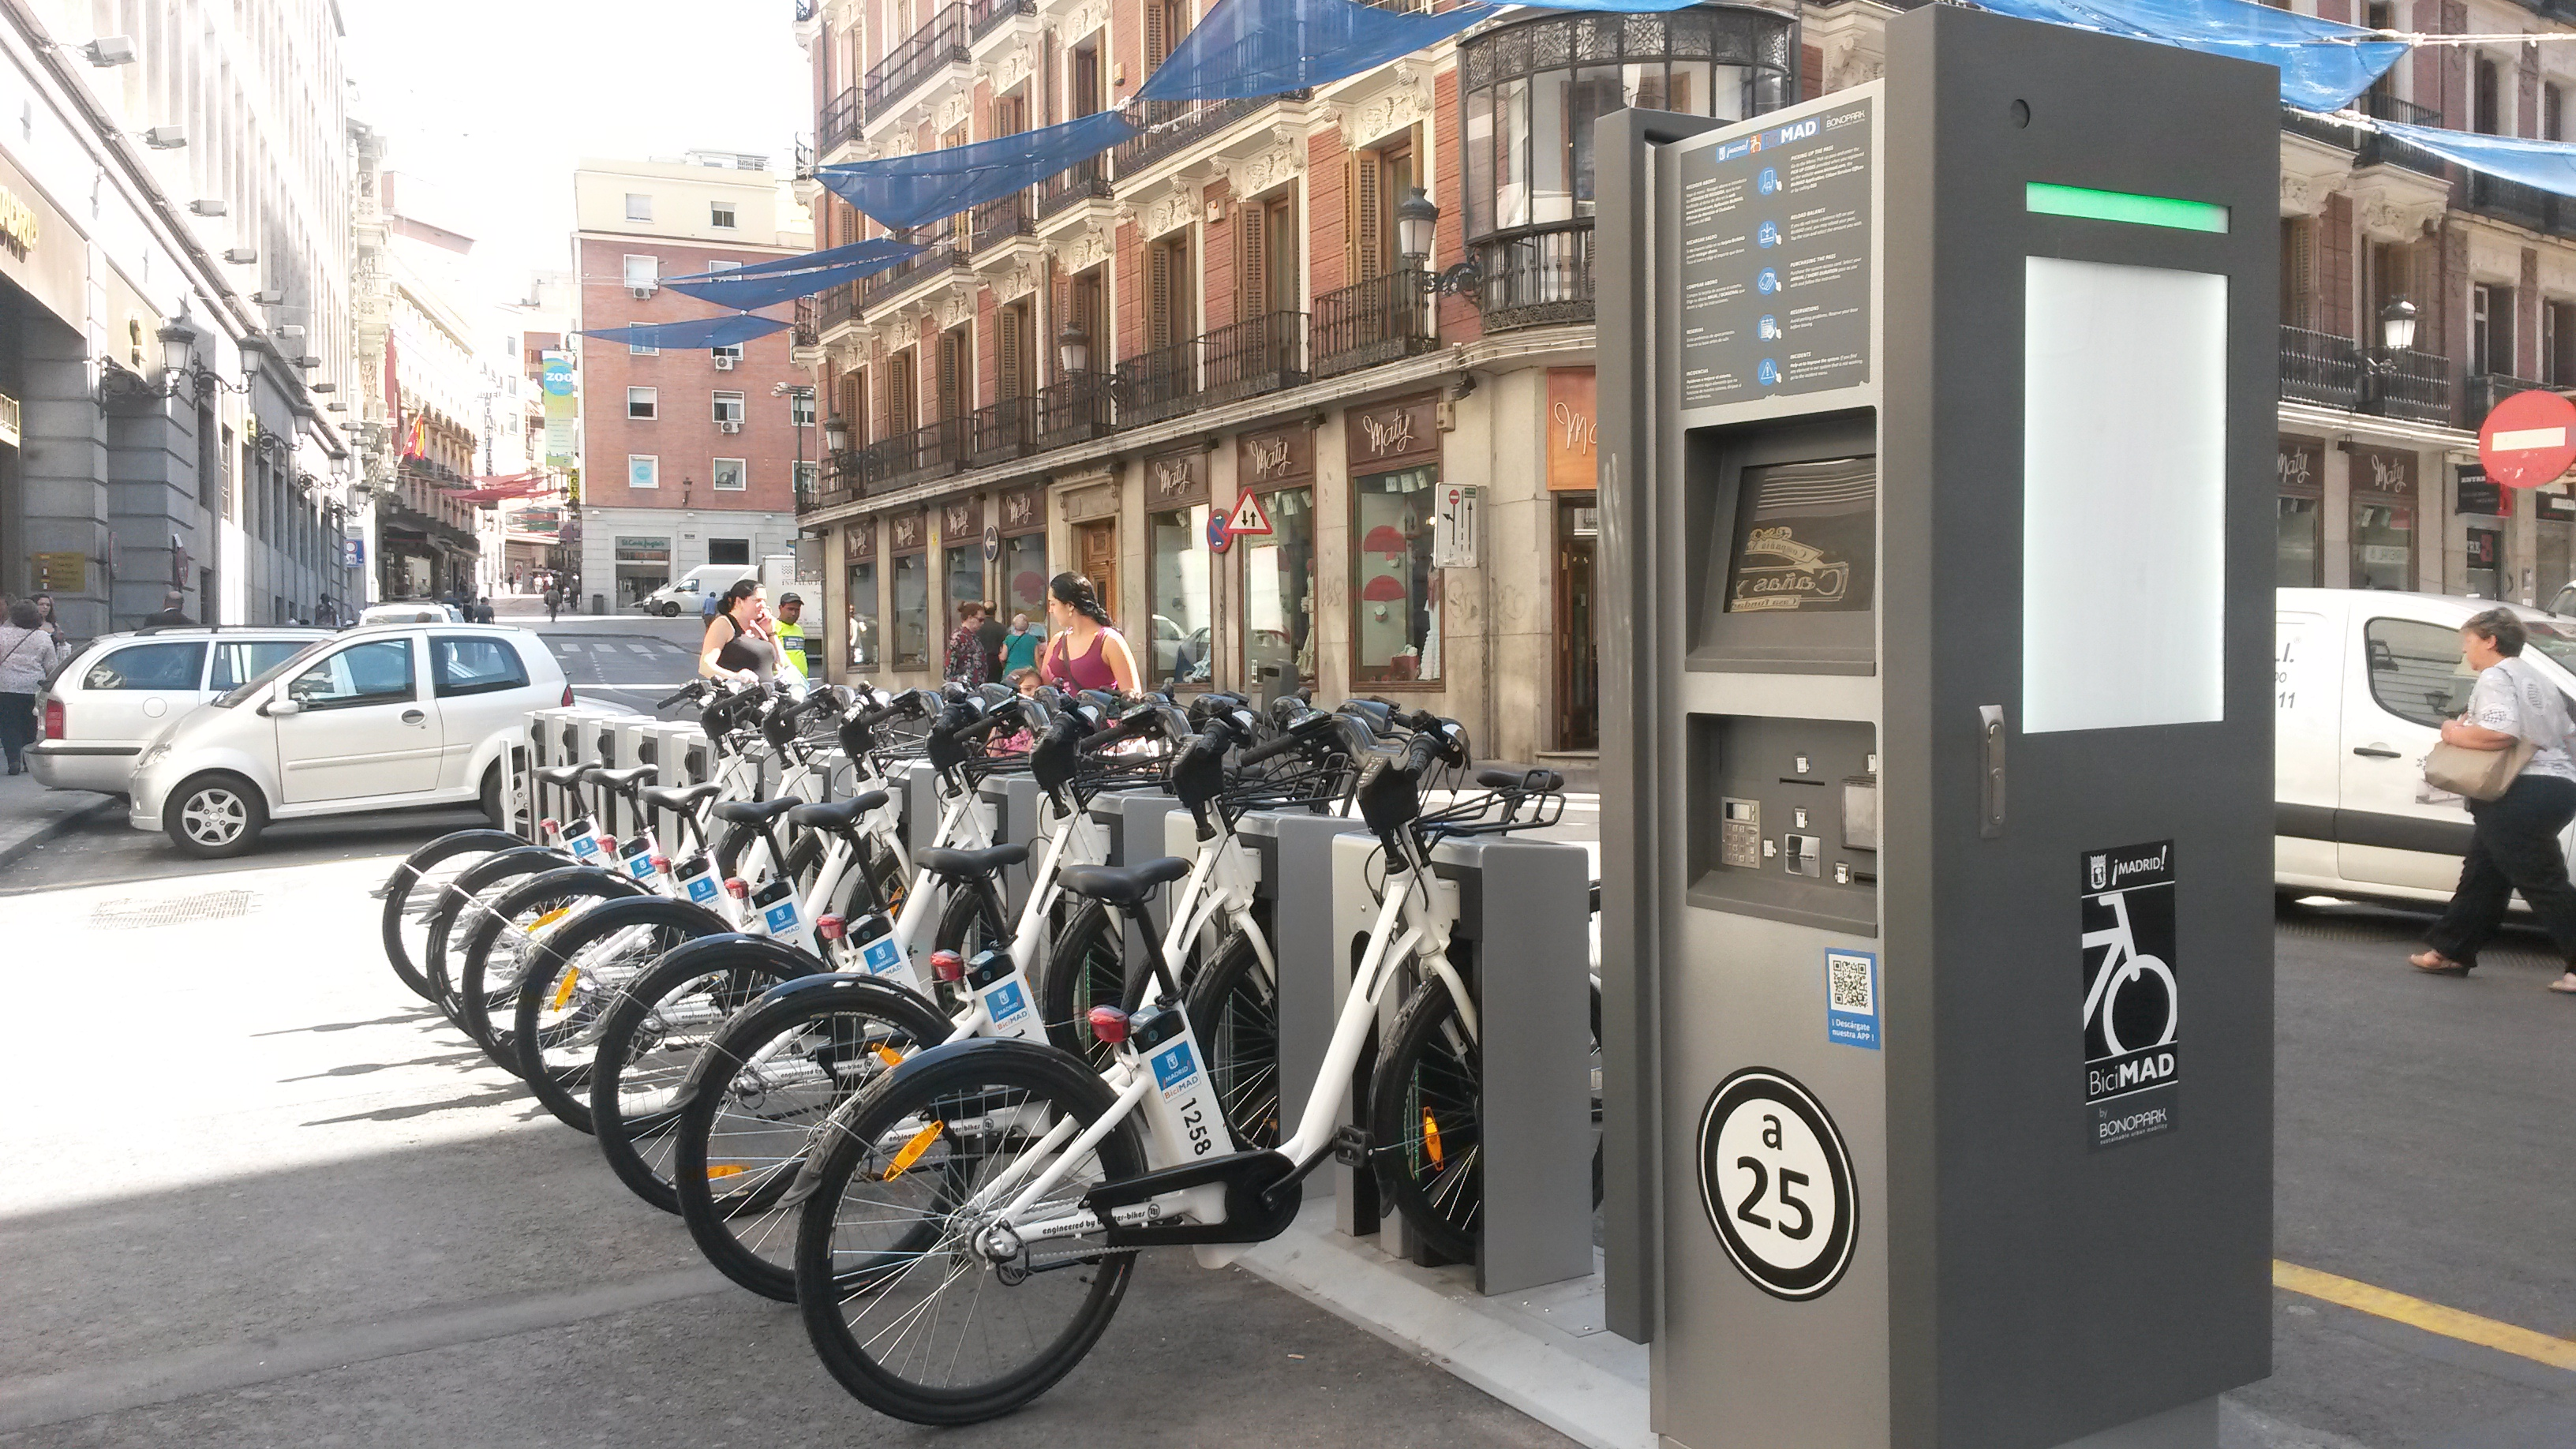 Madrid: Public Bike, Bicimad, It Is Cheap Or Expensive?